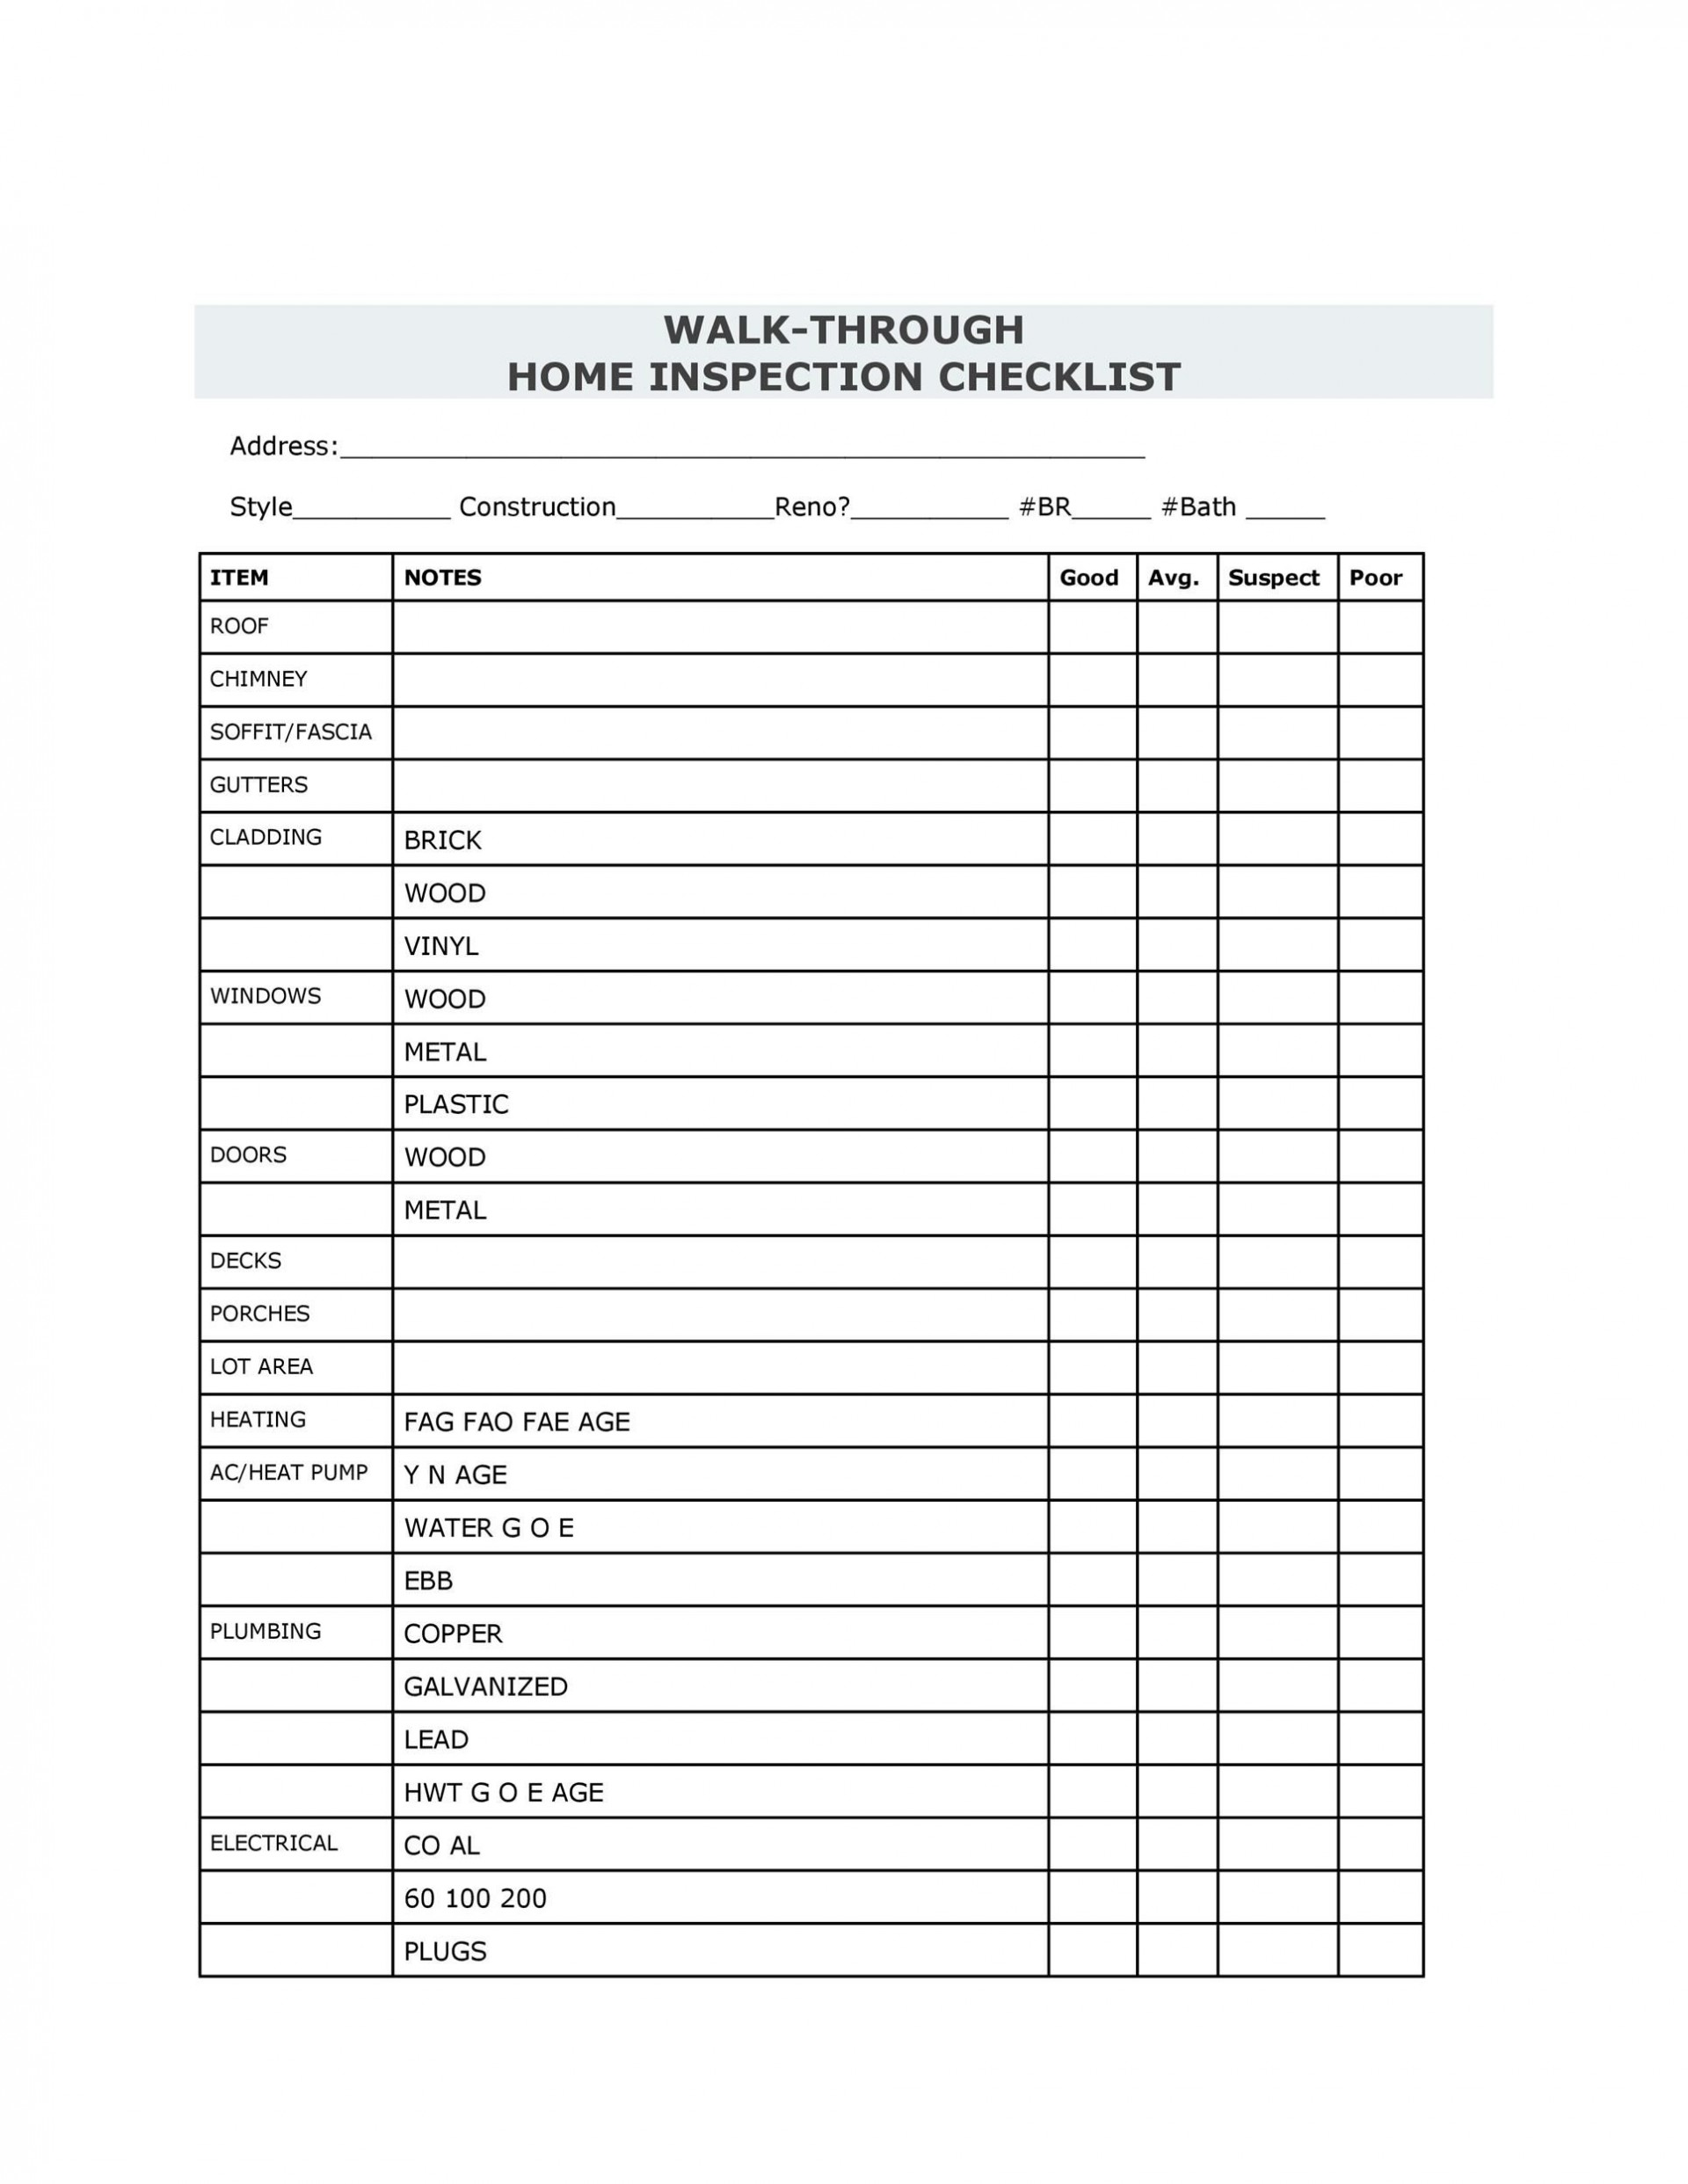 006 Rare Buying A House Checklist Template Sample  Home Excel1920